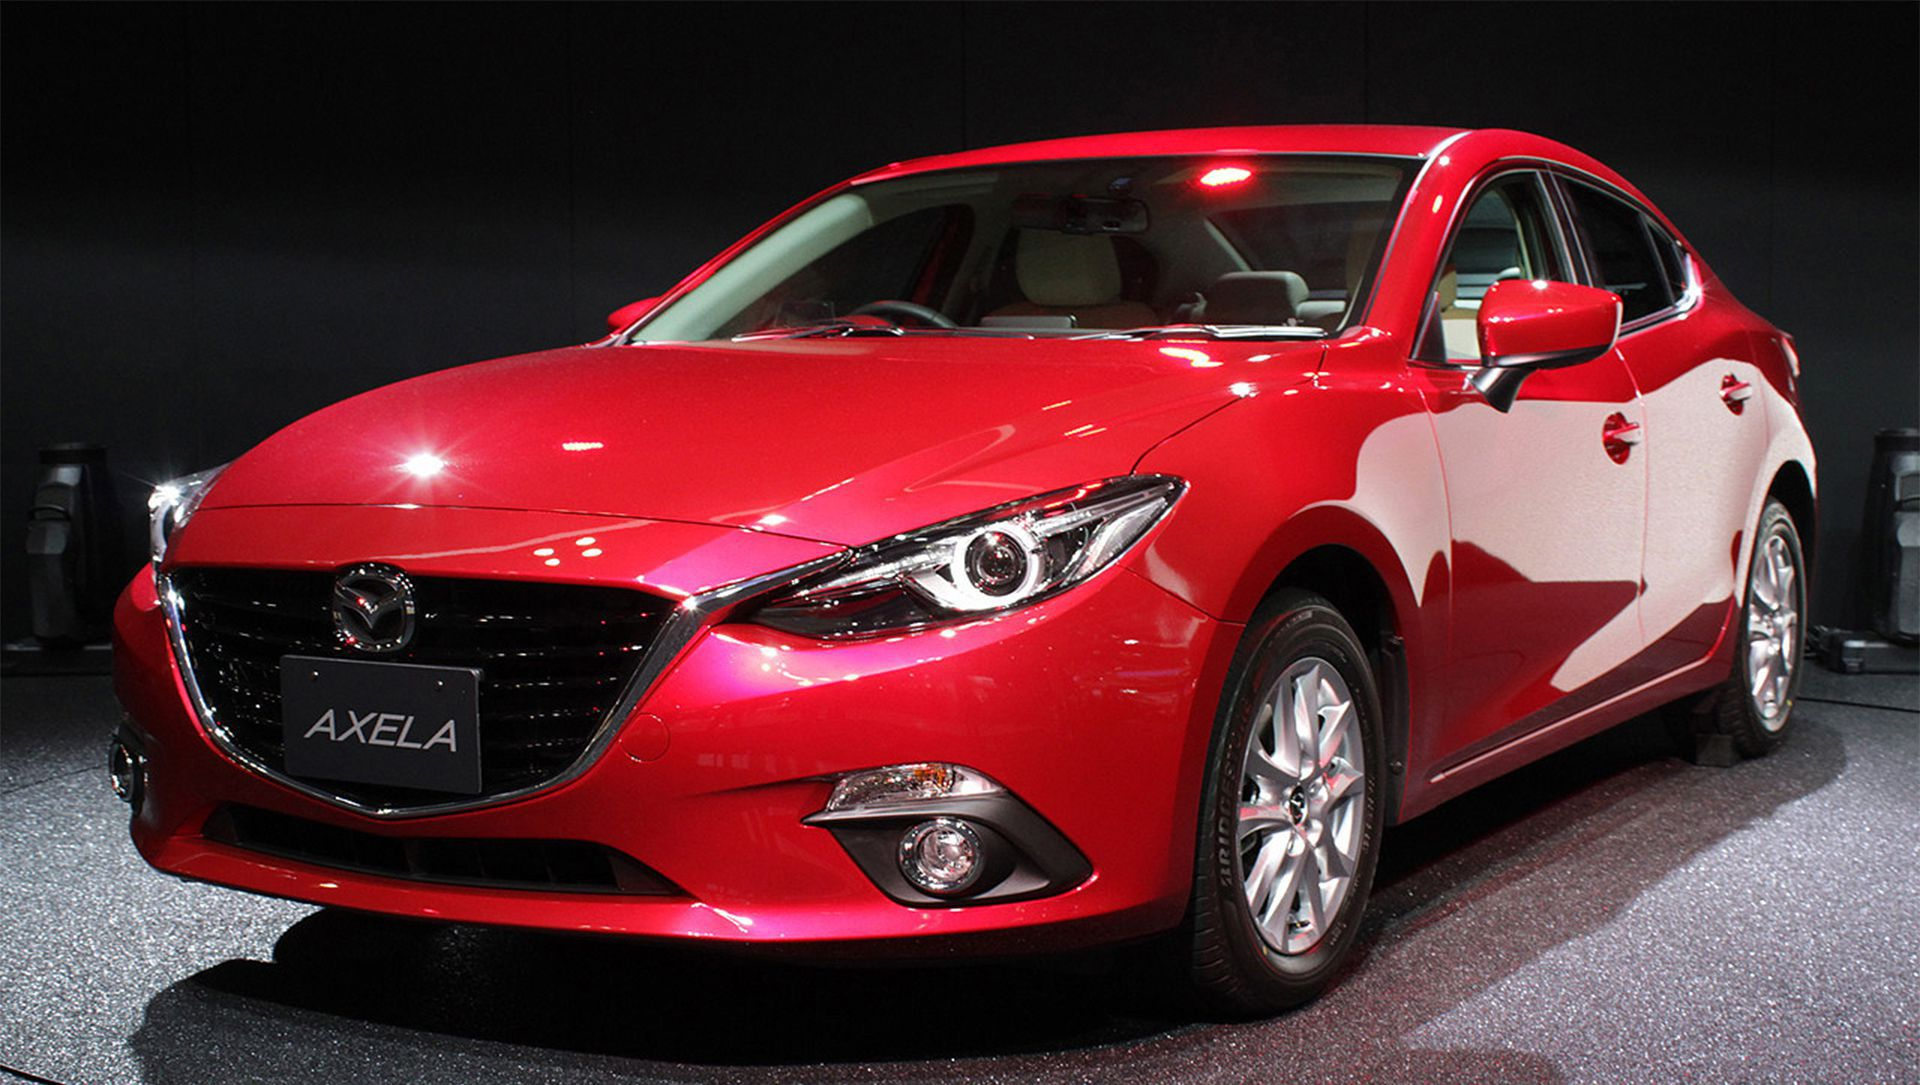 All New 2014 Mazda3 Named Best Compact Car by Yahoo Autos